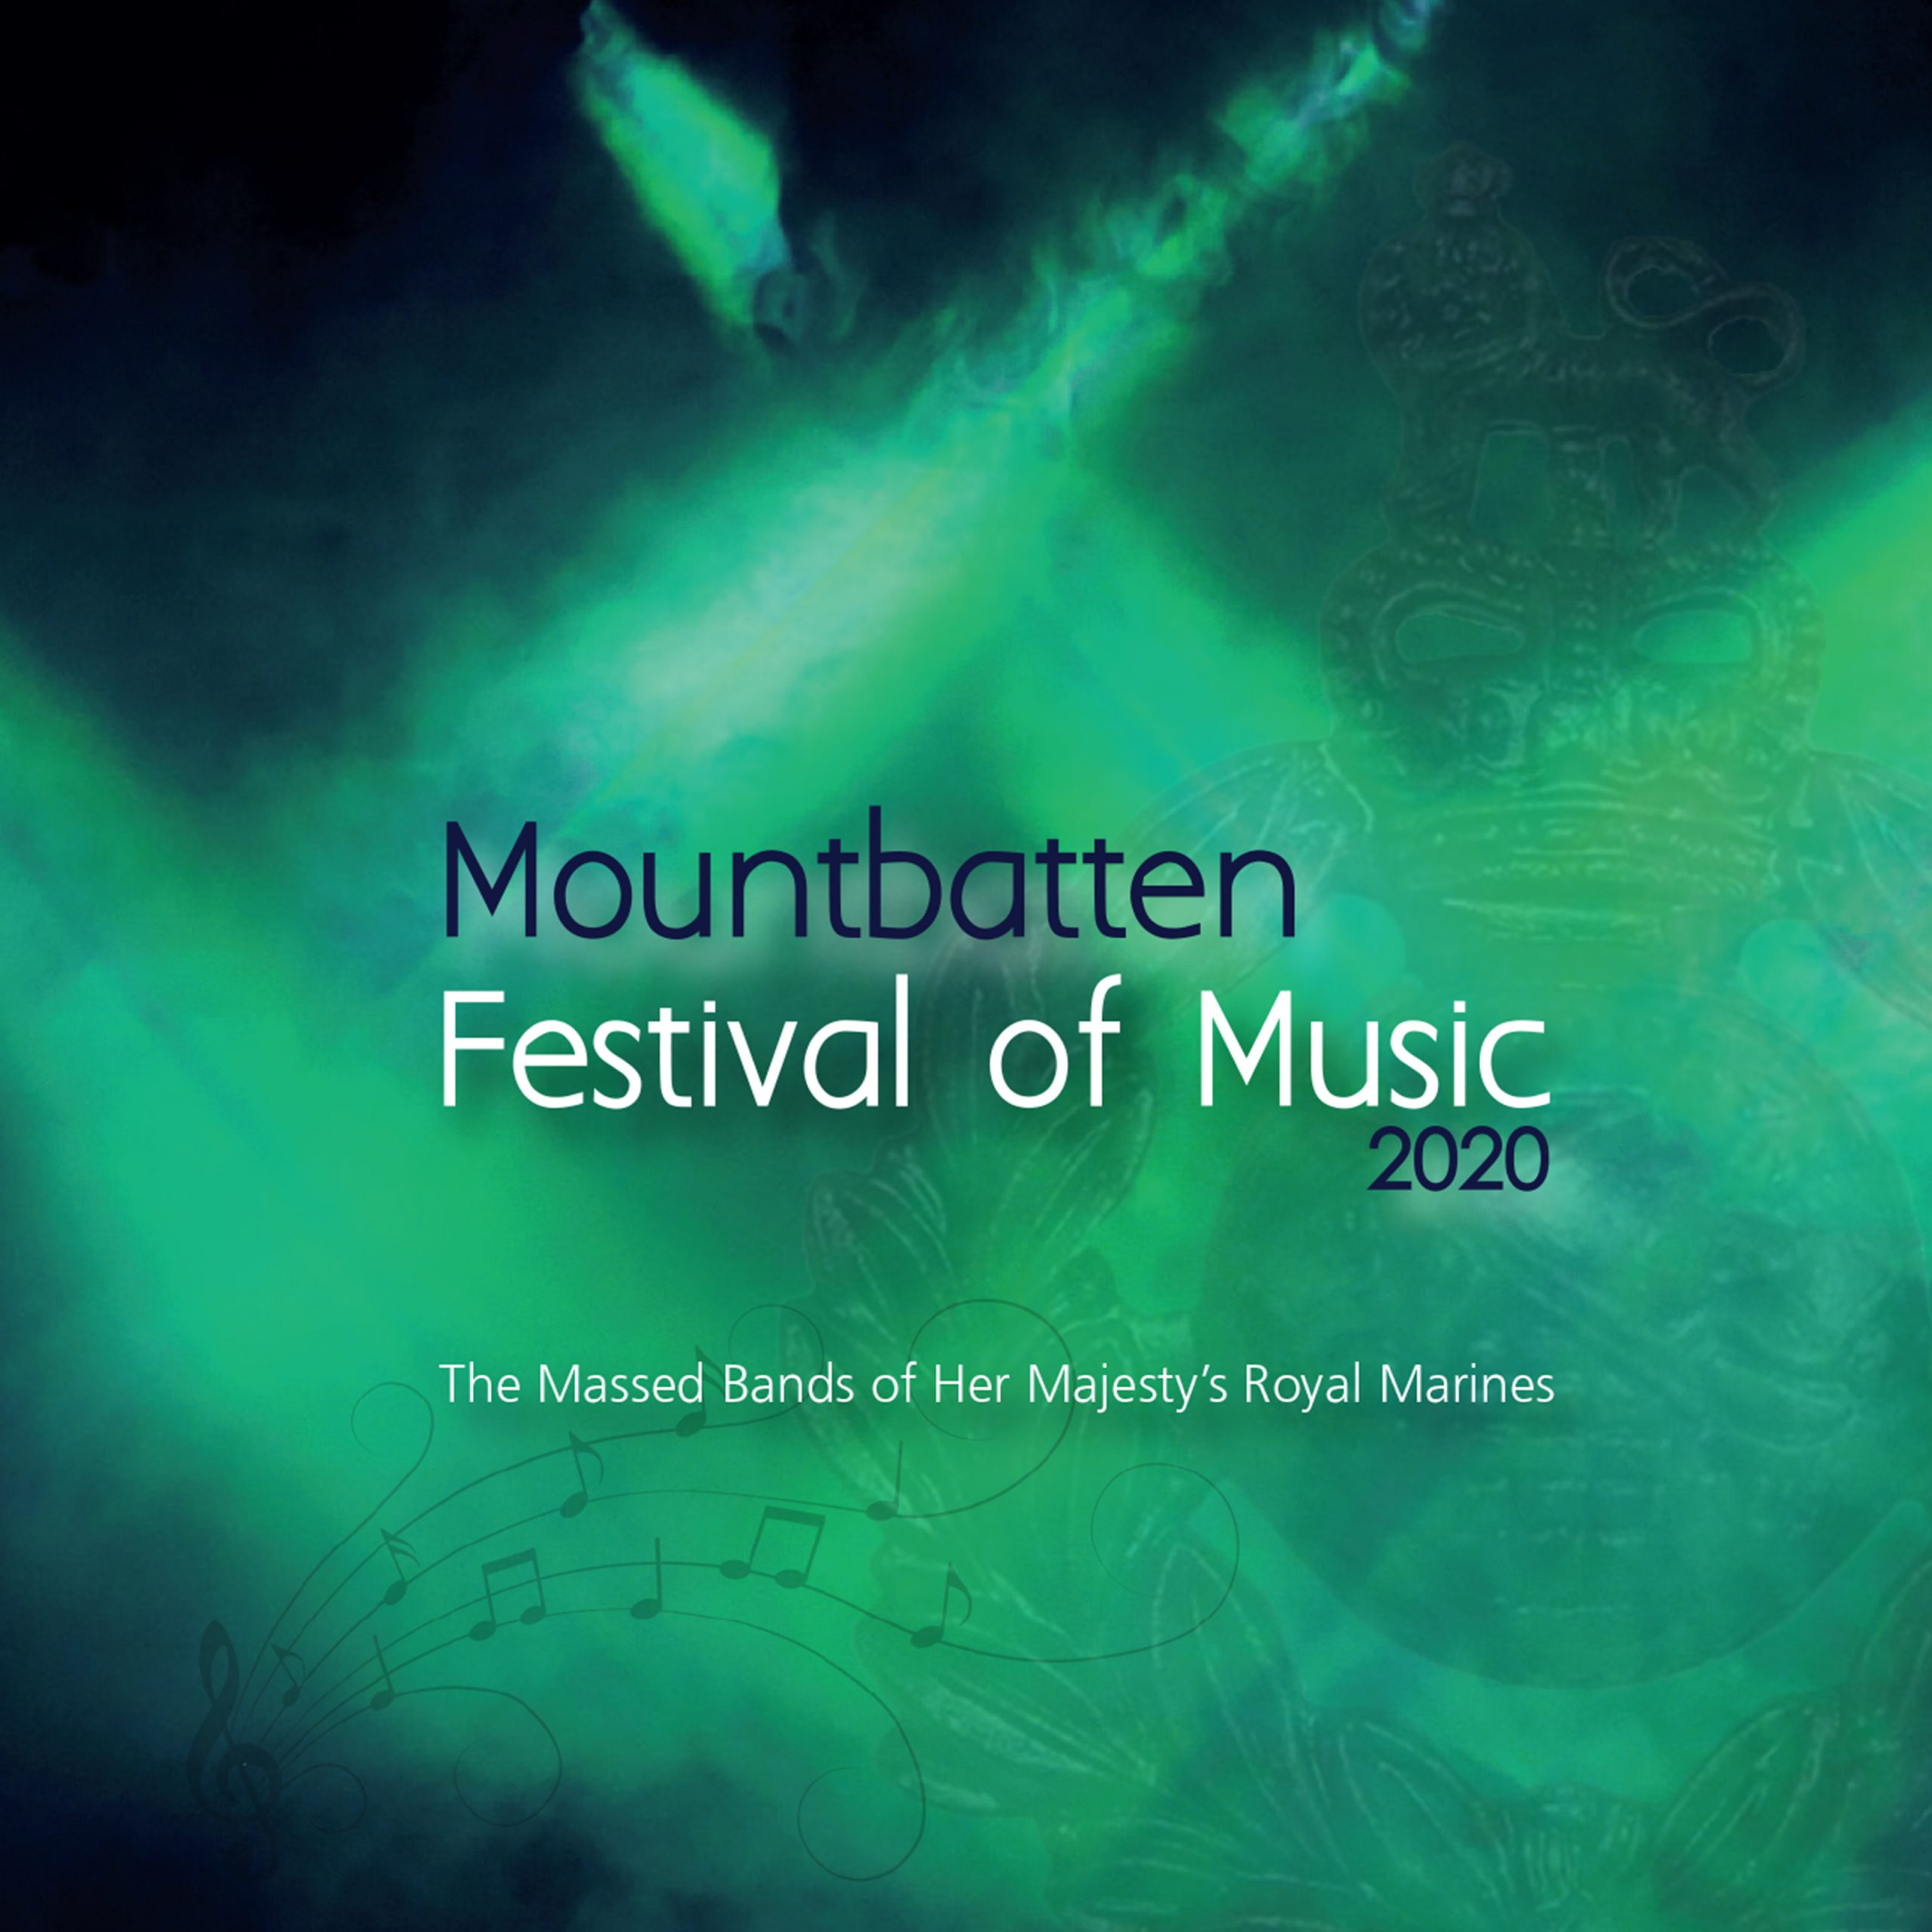 The Mountbatten Festival of Music 2020 CD - The Massed Bands of Her Majesty's Royal Marines